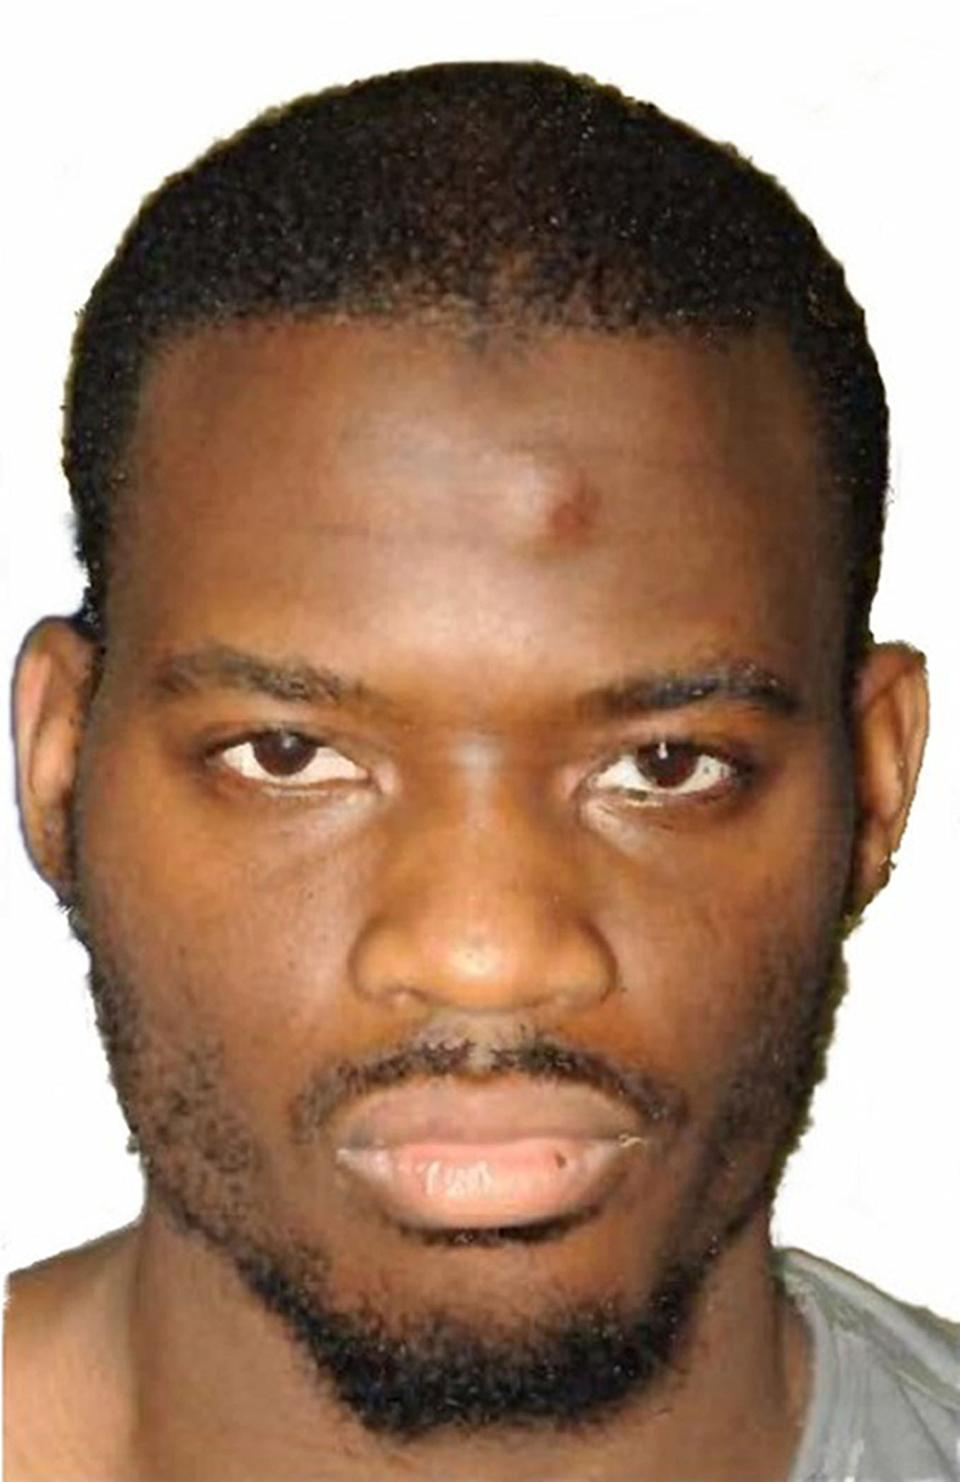 Undated Metropolitan Police file handout photo of one of the two murderers of soldier Lee Rigby, Michael Adebolajo who is suing for compensation two years after his teeth were knocked out during an incident in the high security Belmarsh prison.